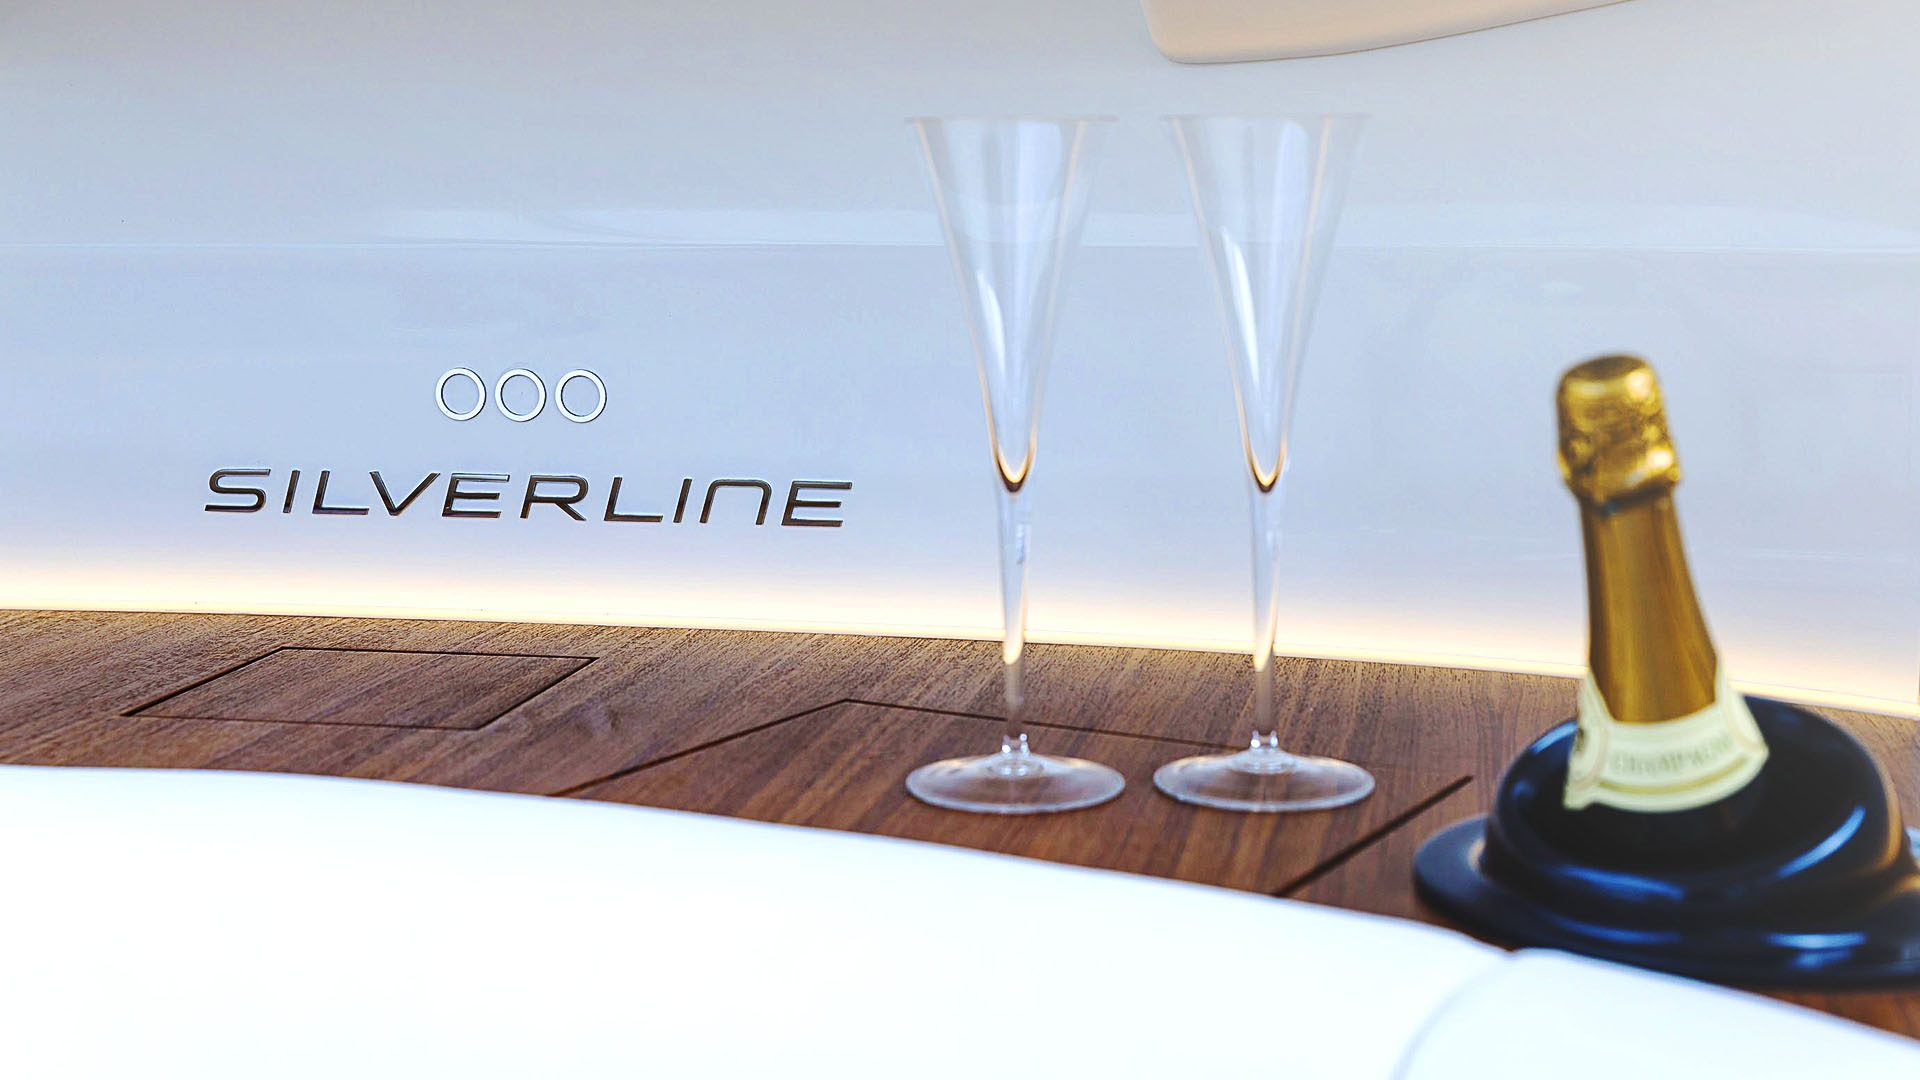 Superyacht tender boat Interior design by Hamid Bekradi, champagne onboard Silverline tender series